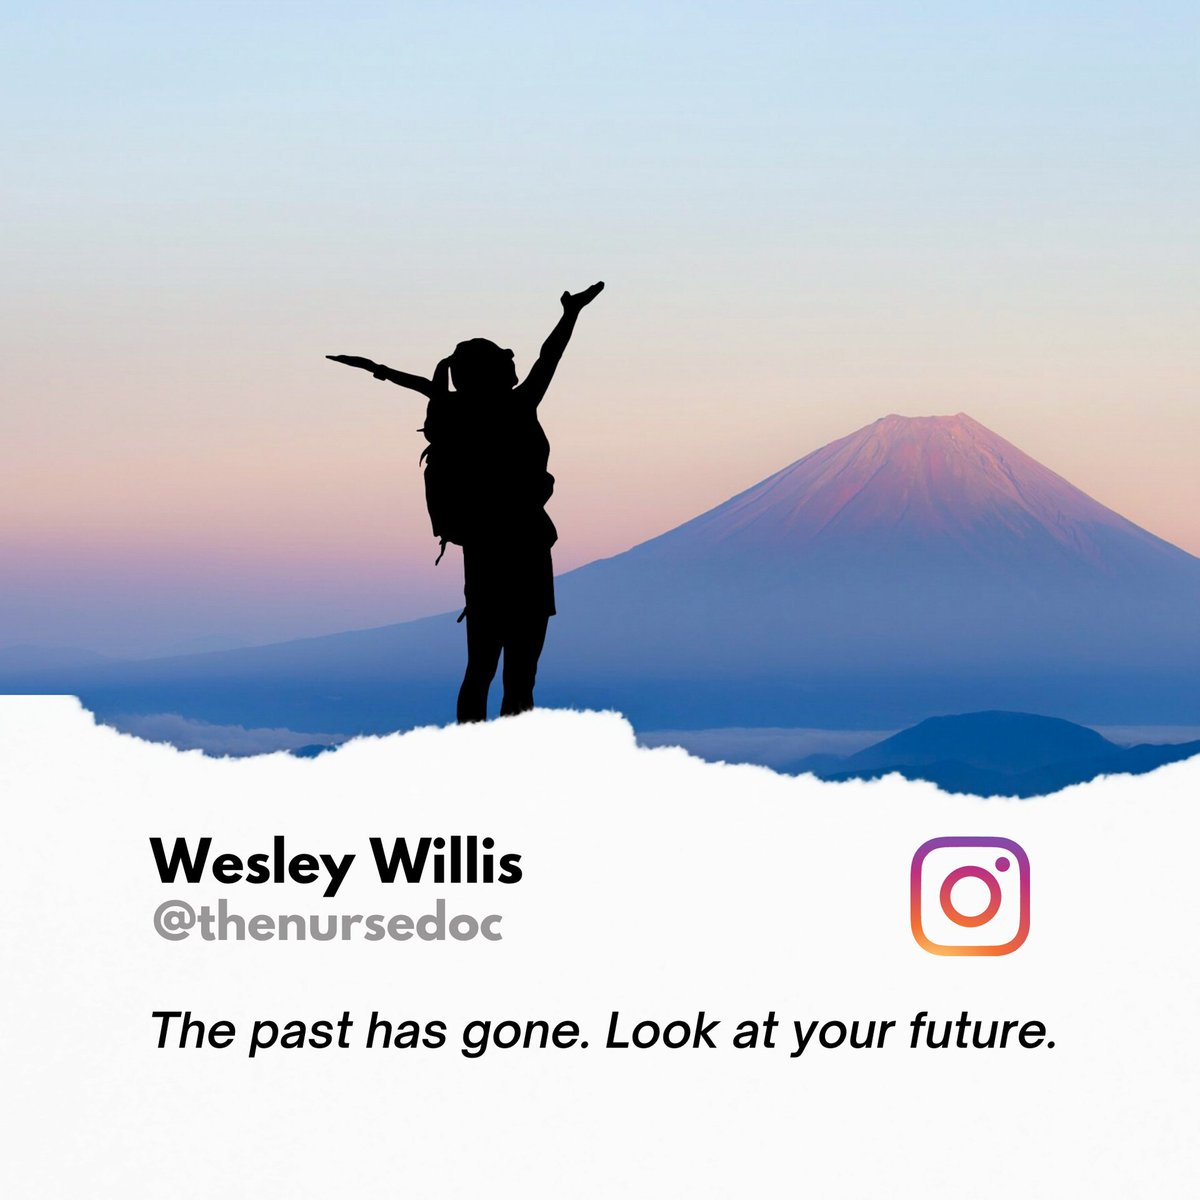 But live the present. Gather full awareness of this very moment cause it's all we have. And your future will look bright. . . . . . . #nursedoc #thenursedoc #nurse #nurselife #quotesilove #happyme #helping #healthy #wellbeing #happycouples #share #livefully